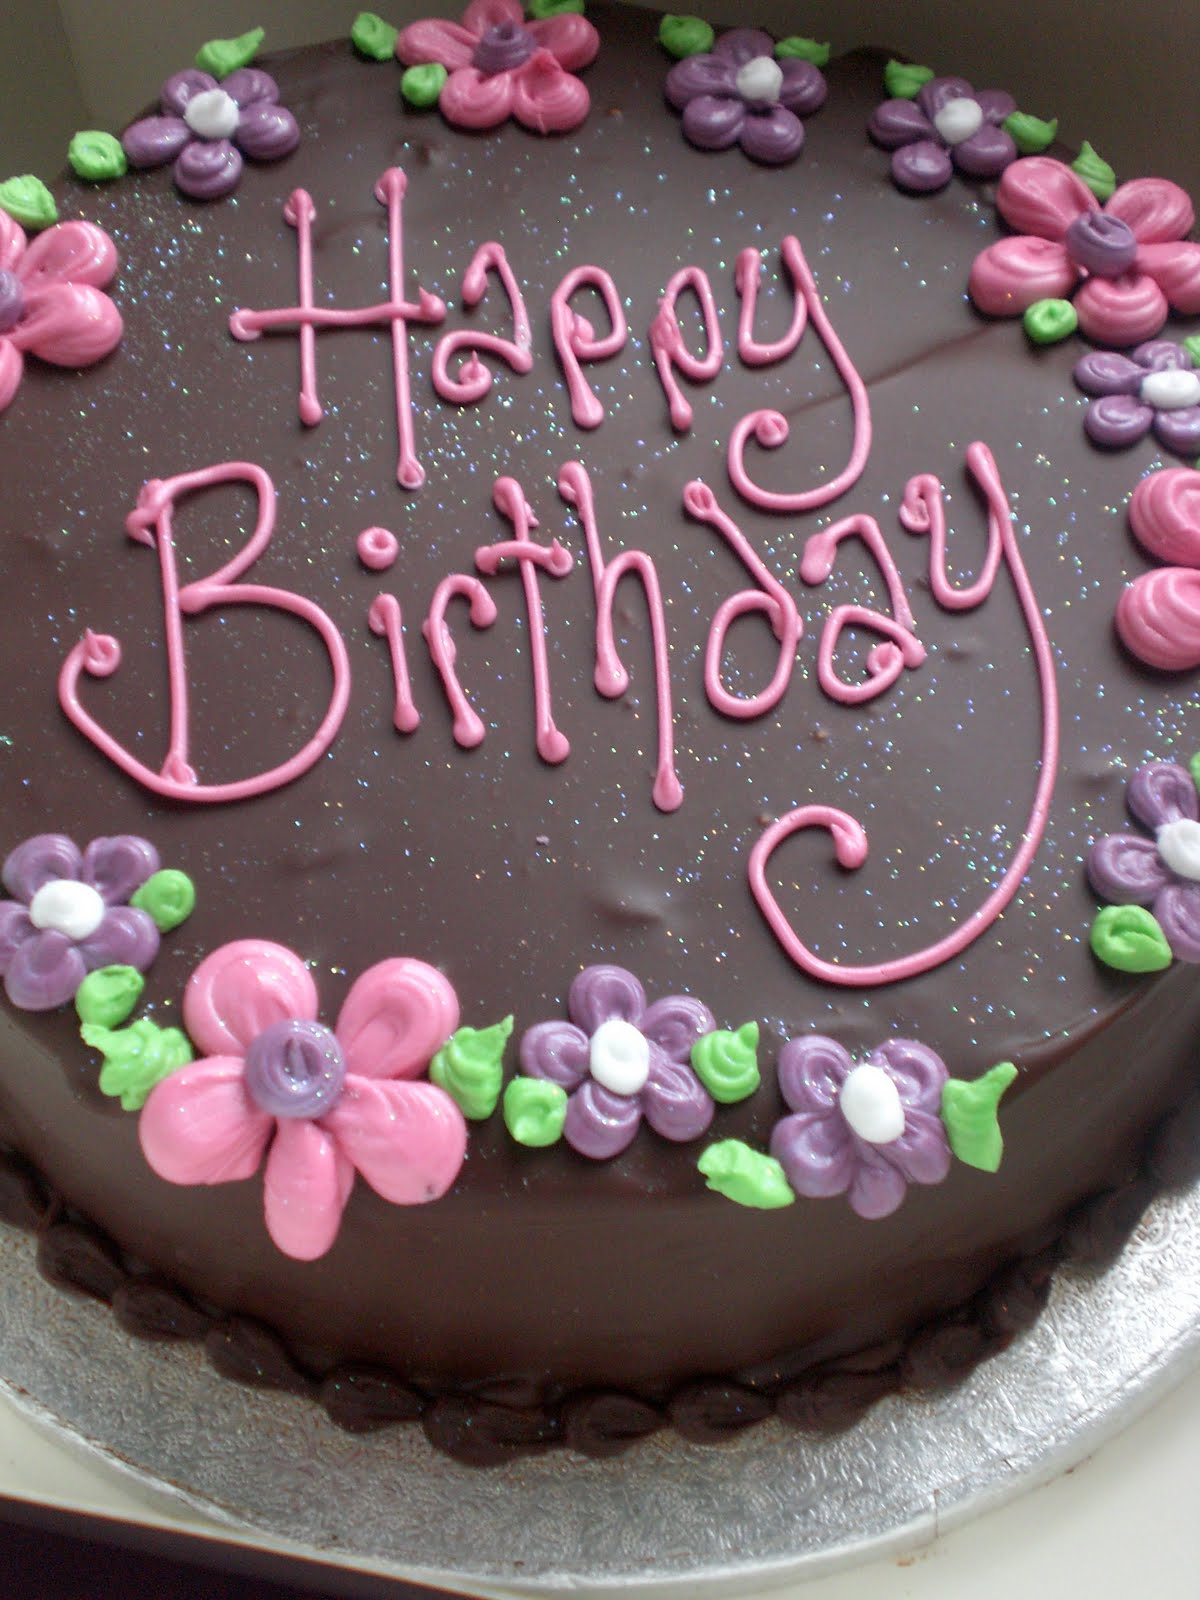 Happy birthday wishes cake pictues imags quotes to you jesus sister cards funny - Happy birthday cake picture ...